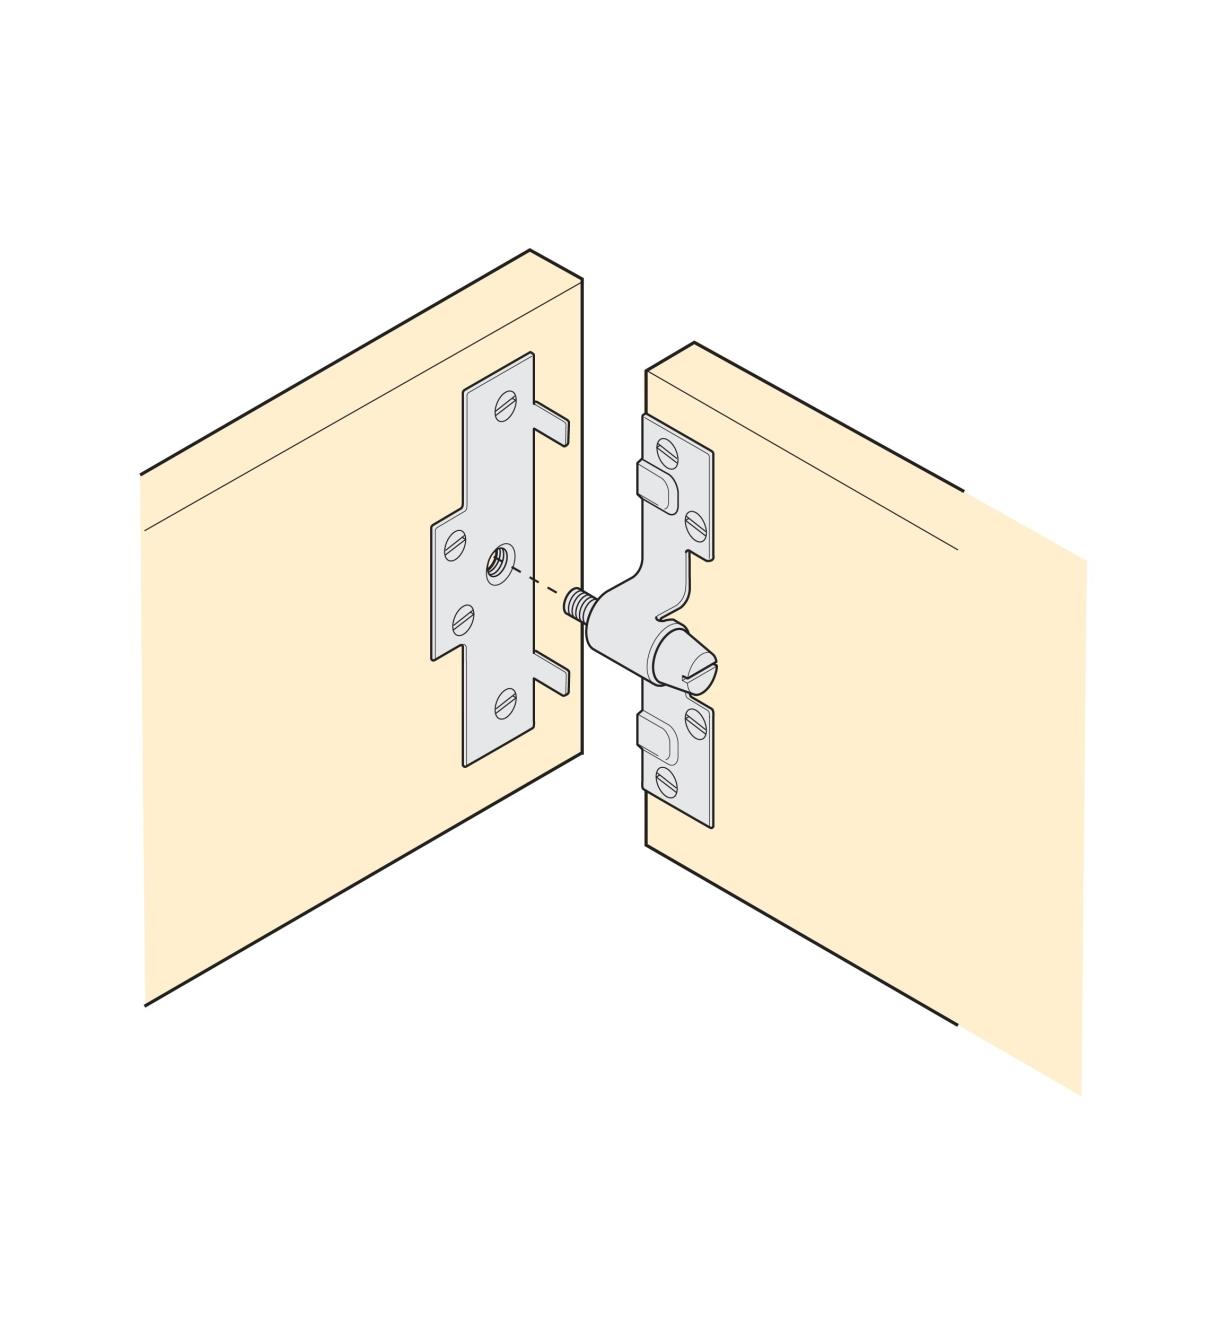 Illustration shows how to install Regular Brackets